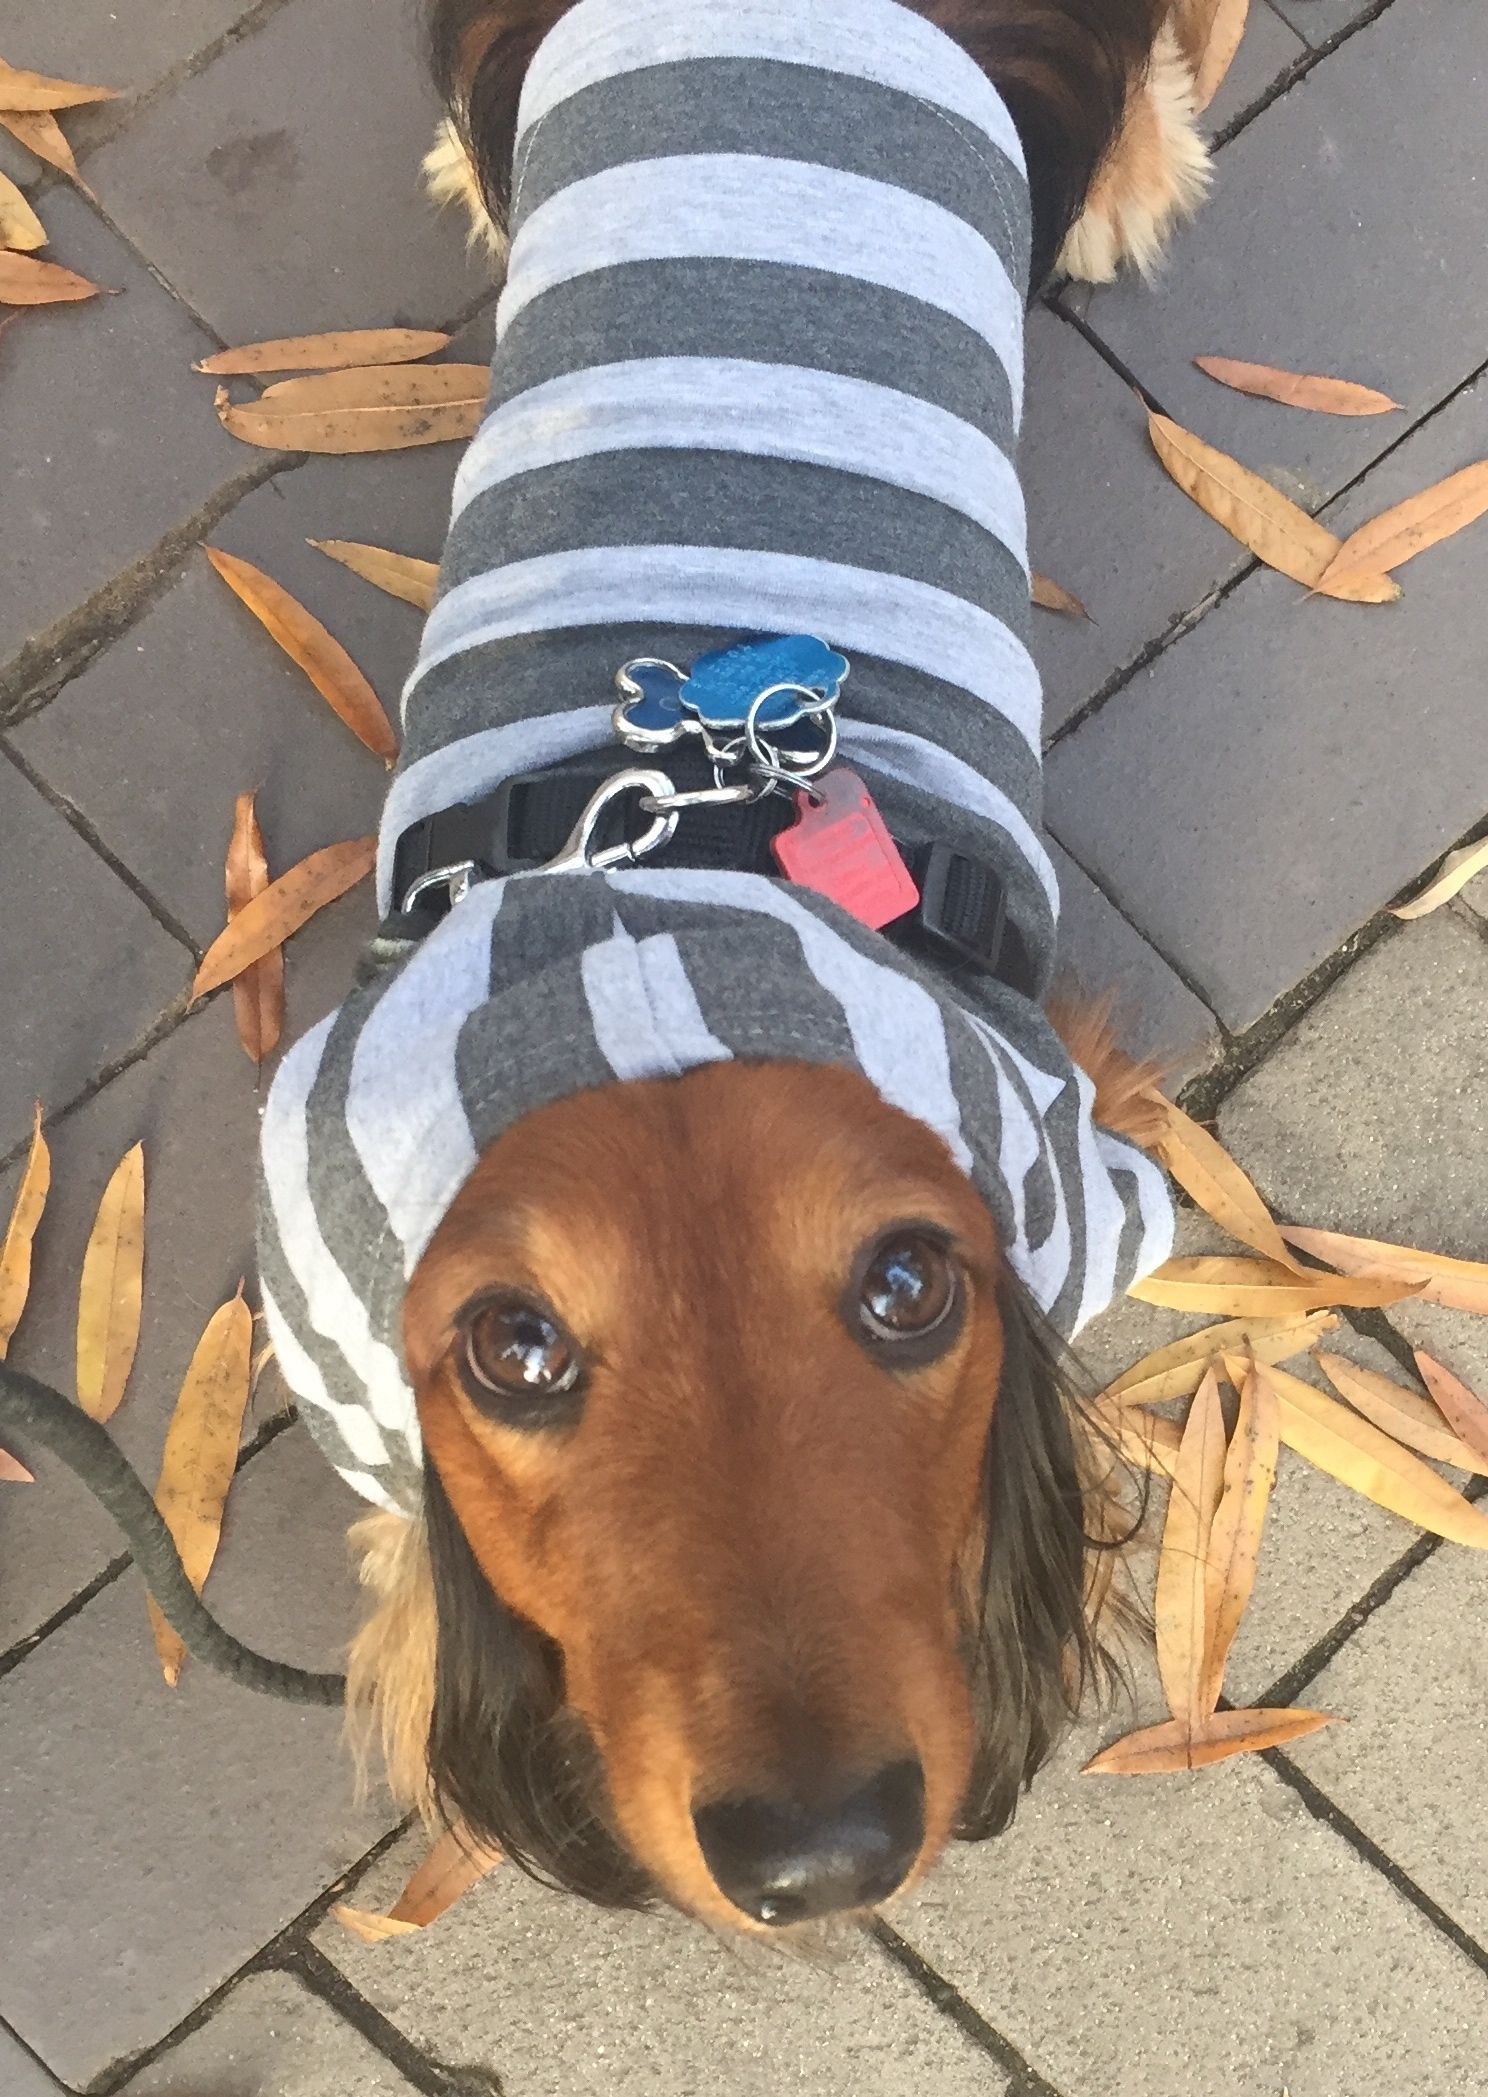 Soft Stretchy And Lightweight Dog Hoodies For Small And Medium